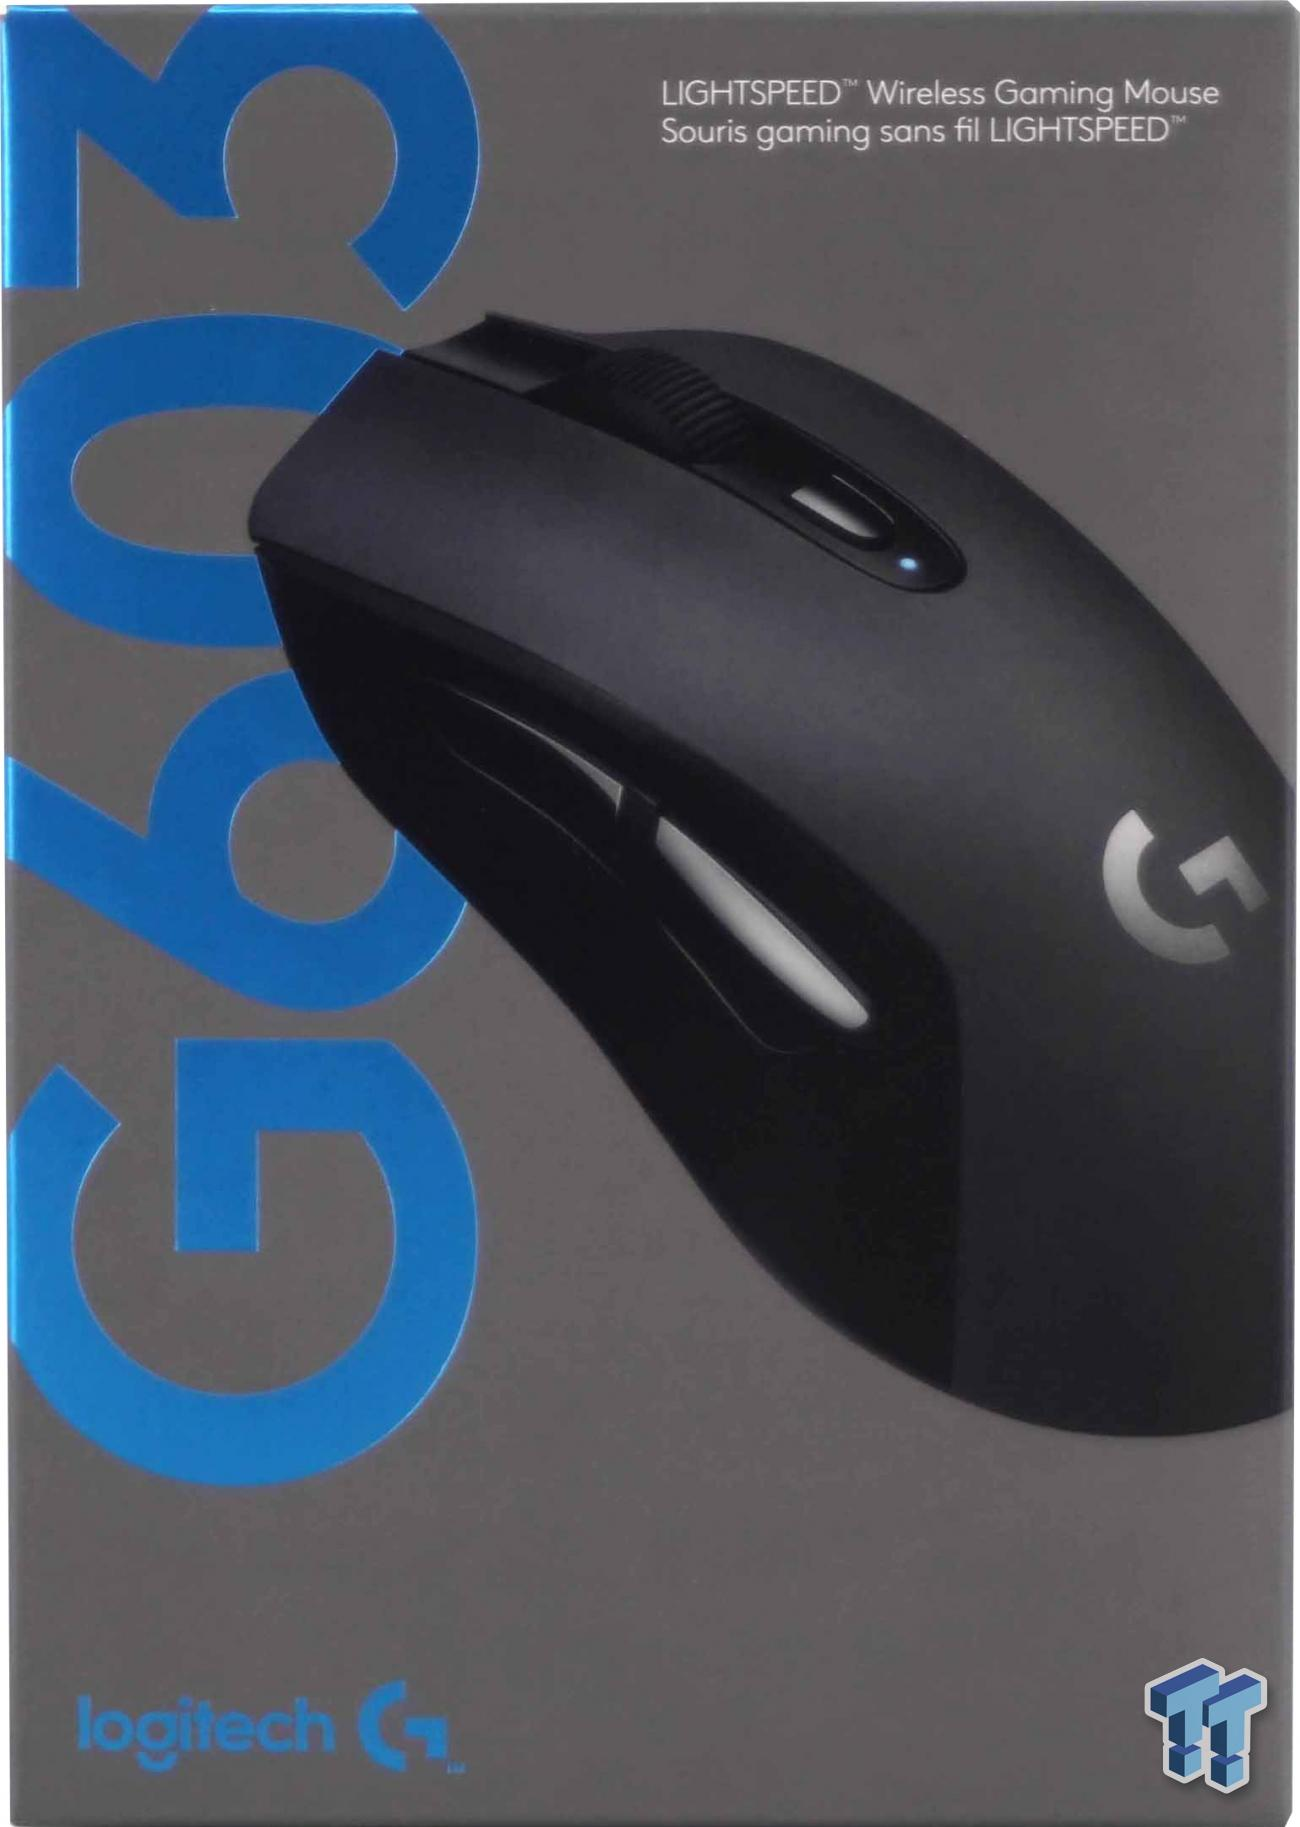 Logitech G603 Lightspeed Wireless Gaming Mouse Review